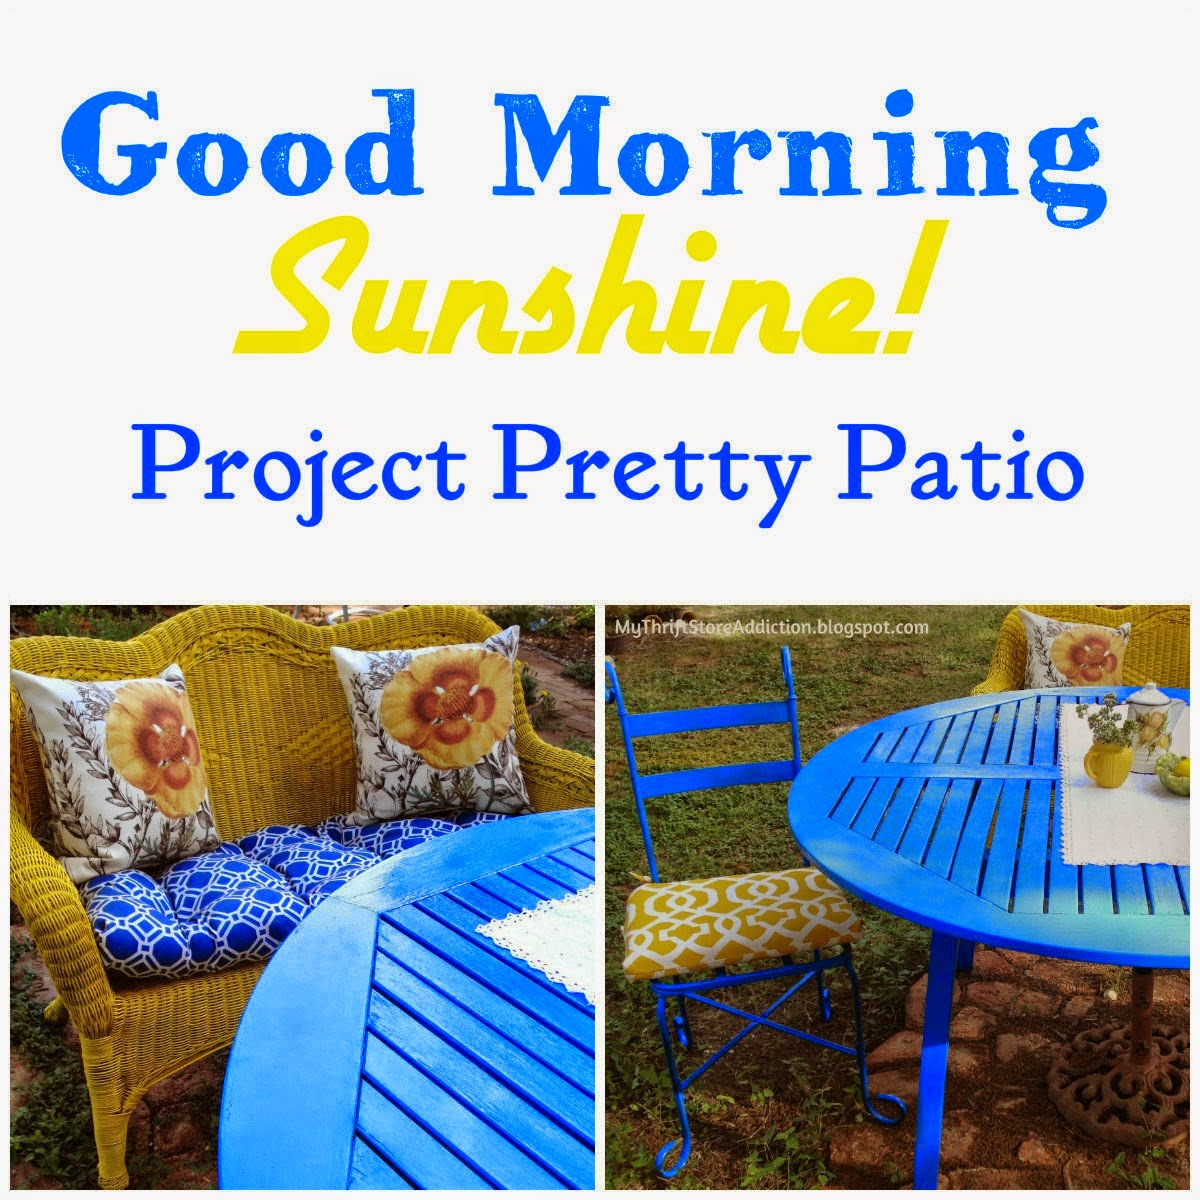 My Thrift Store Addiction shared her Good Morning Sunshine Project featured patio furniture at One More Time Events.com